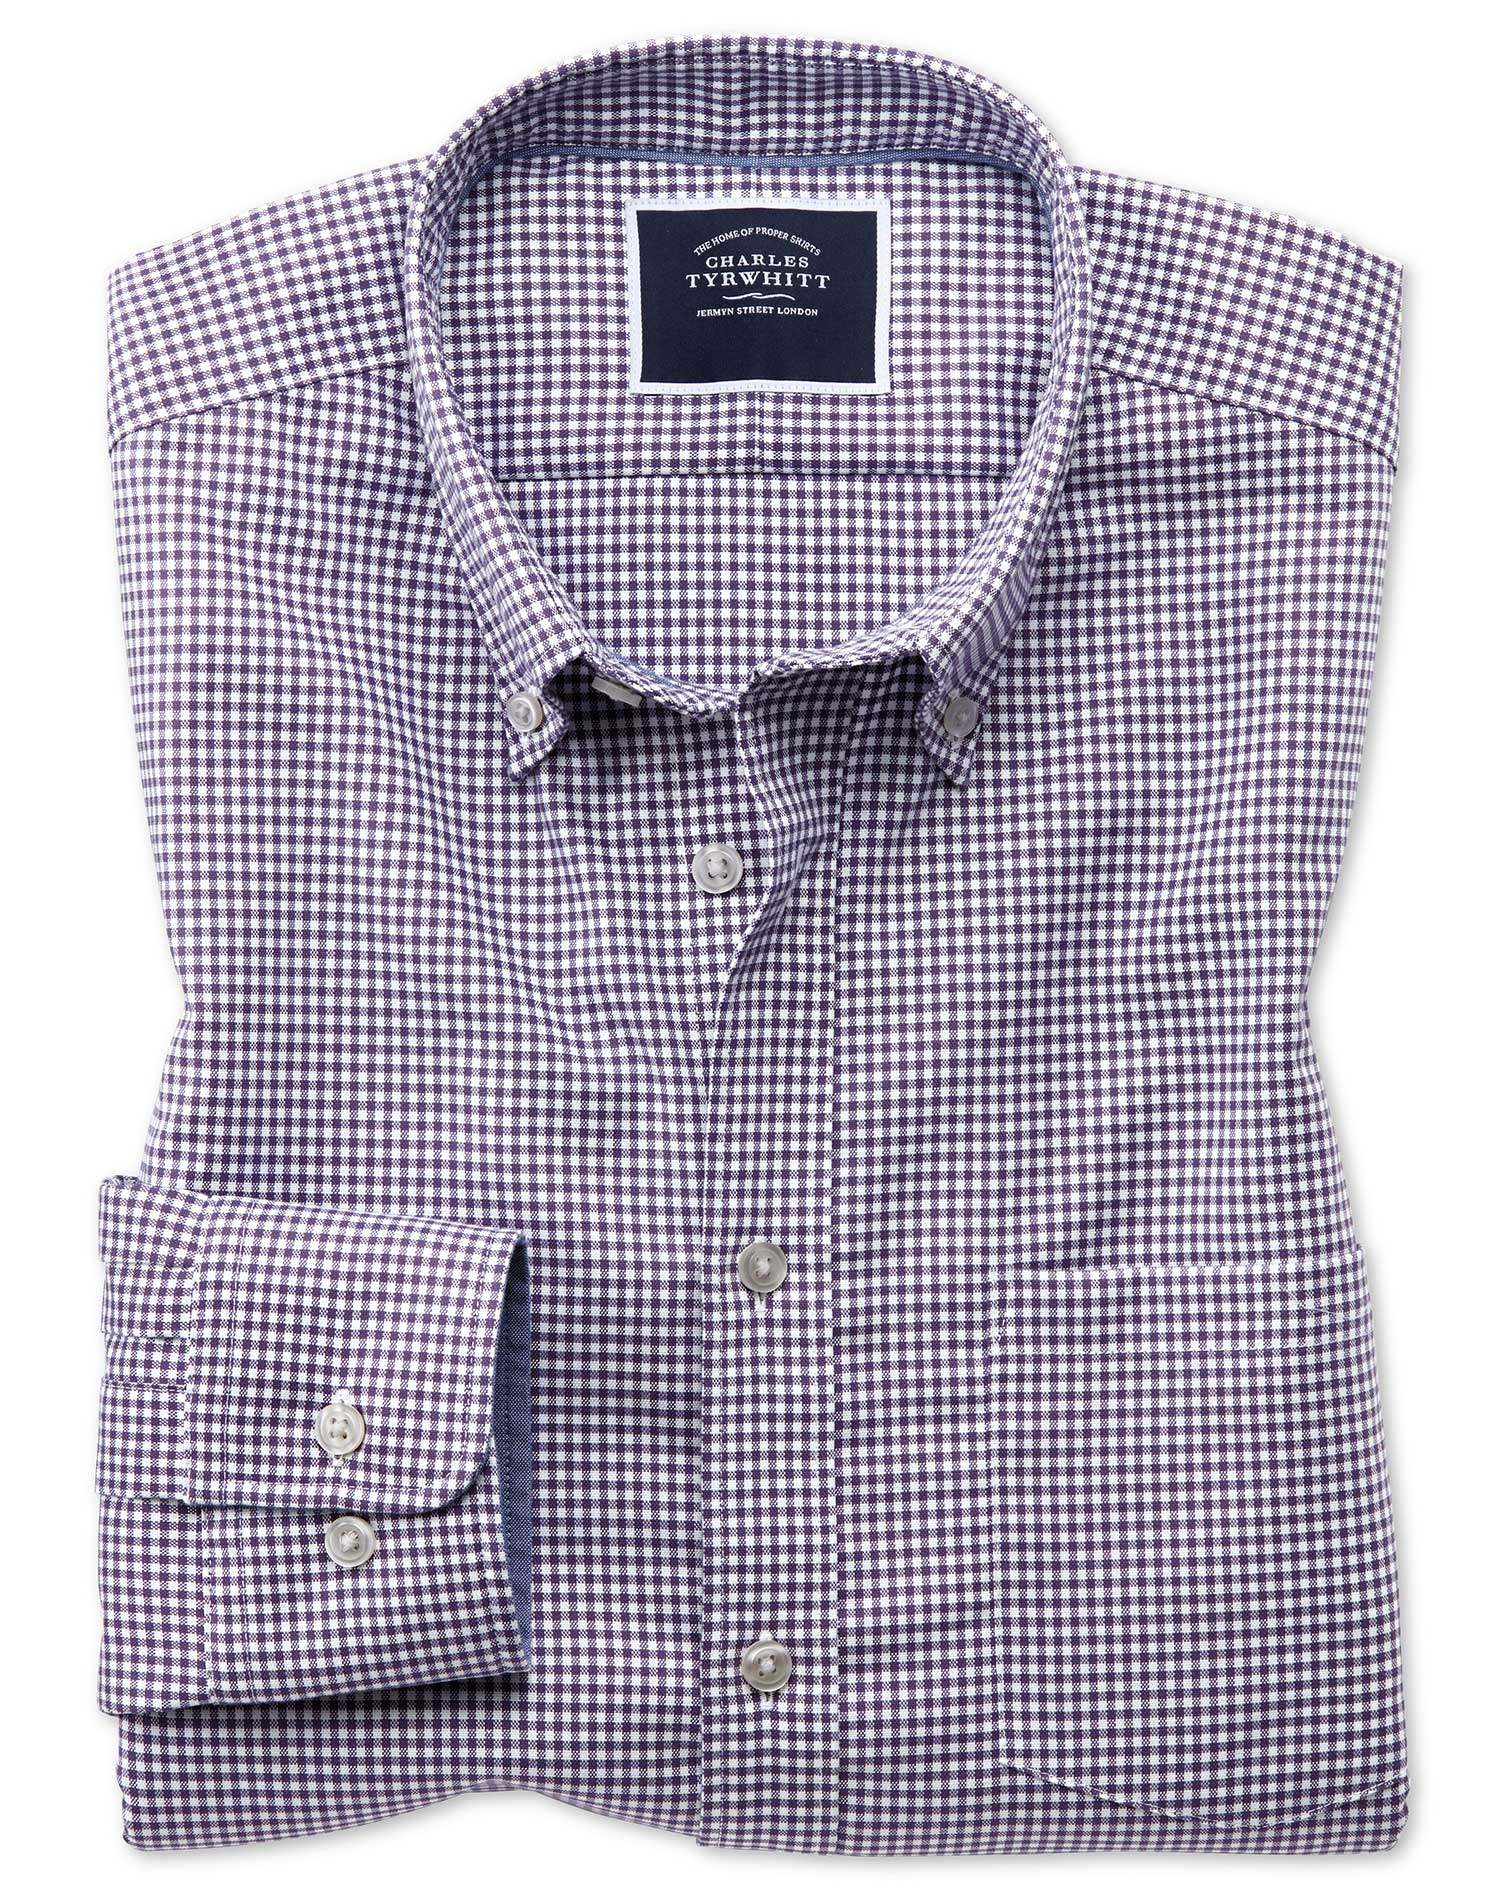 Slim Fit Purple Gingham Soft Washed Non-Iron Stretch Cotton Shirt Single Cuff Size XL by Charles Tyr